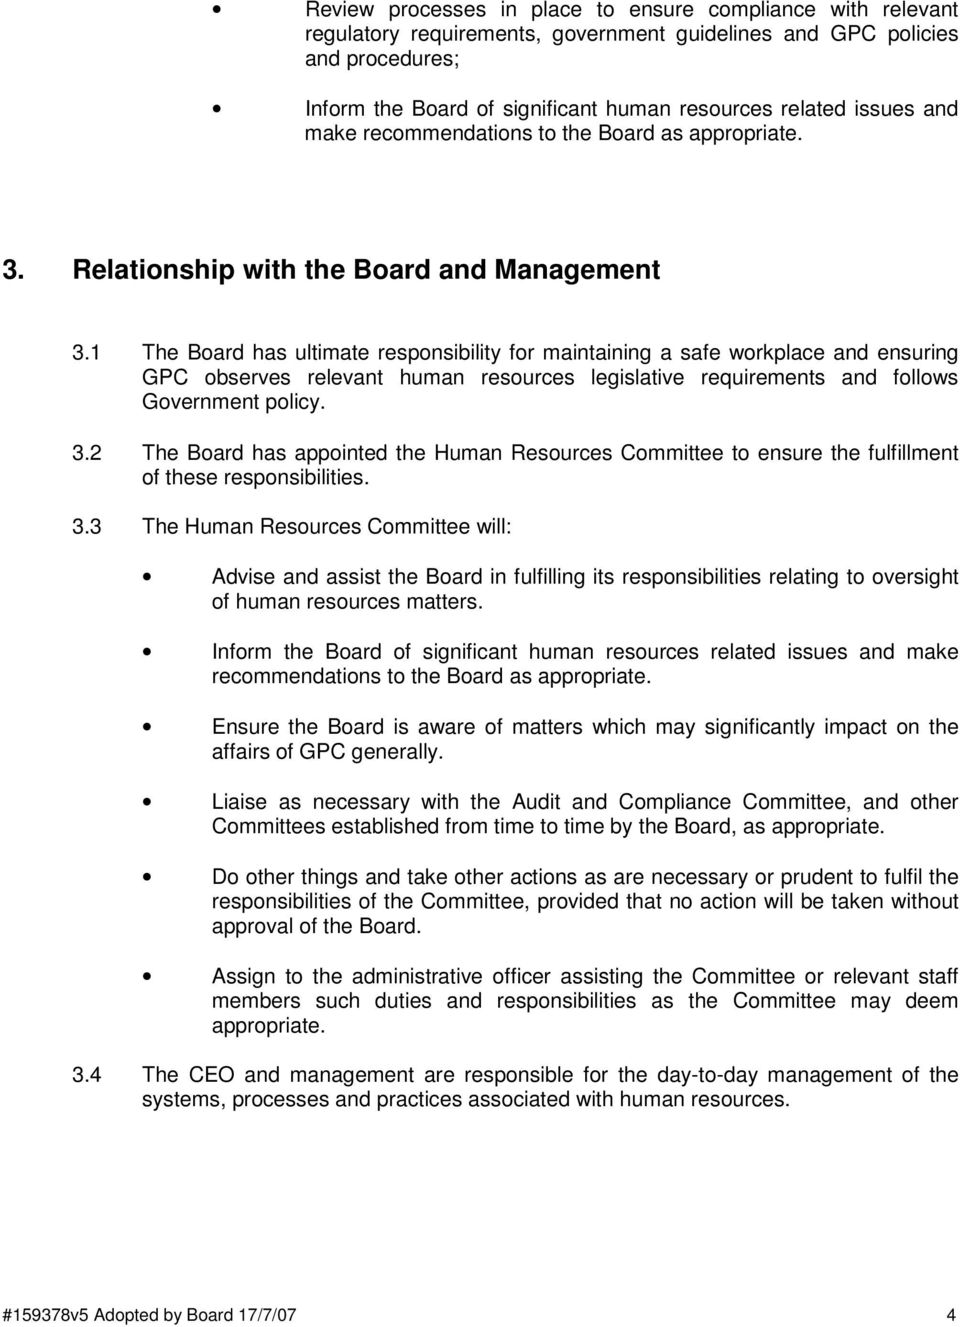 1 The Board has ultimate responsibility for maintaining a safe workplace and ensuring GPC observes relevant human resources legislative requirements and follows Government policy. 3.